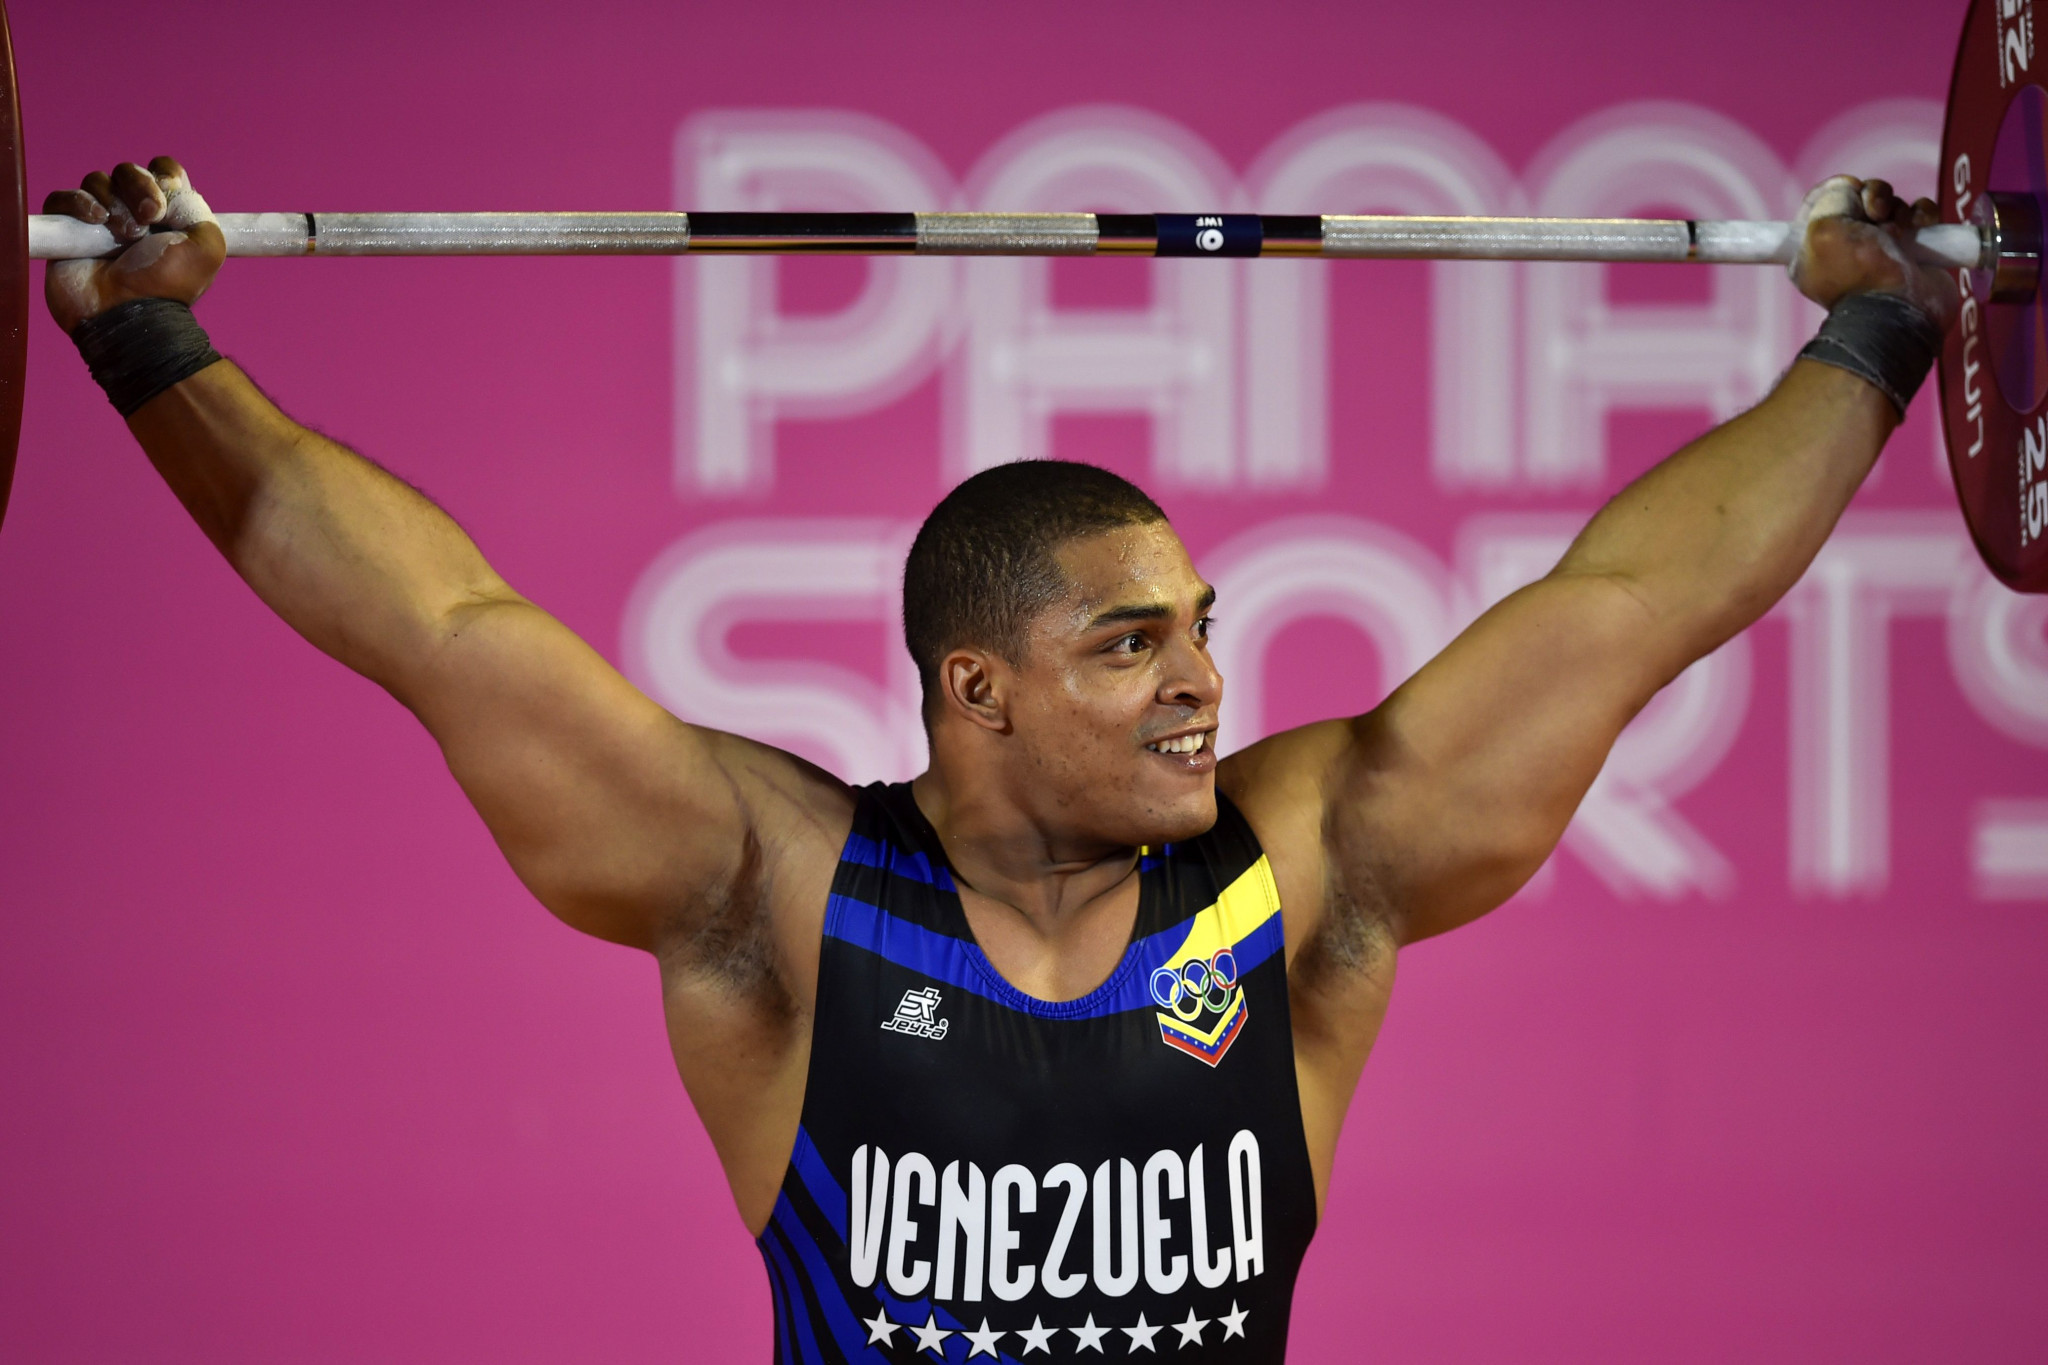 Pan American Weightlifting Federation to hold Hall of Fame inauguration ceremony